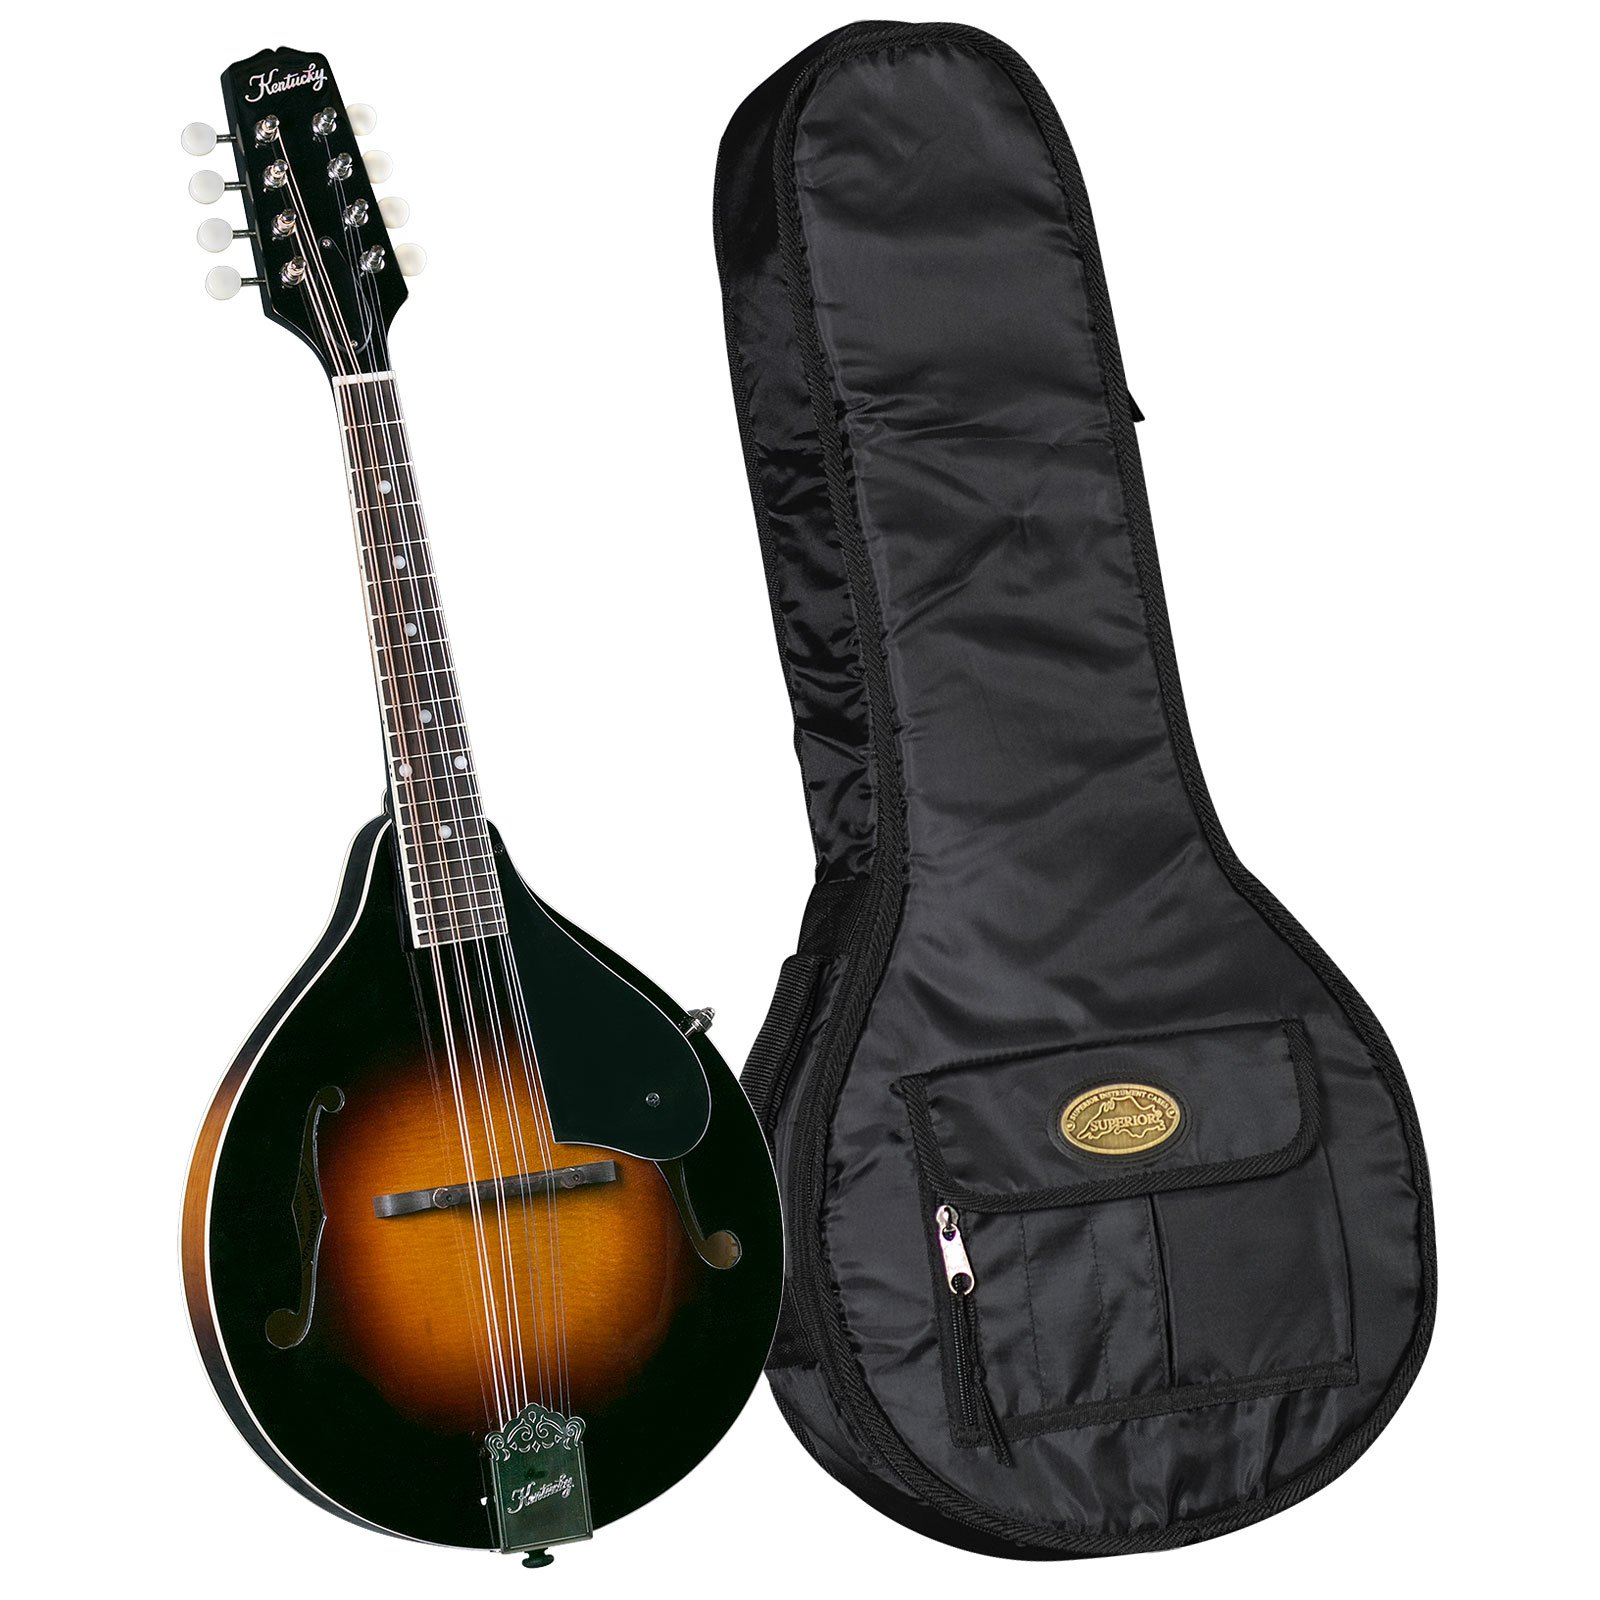 Kentucky KM-140 Standard A-model Mandolin with Deluxe Bag - Sunburst